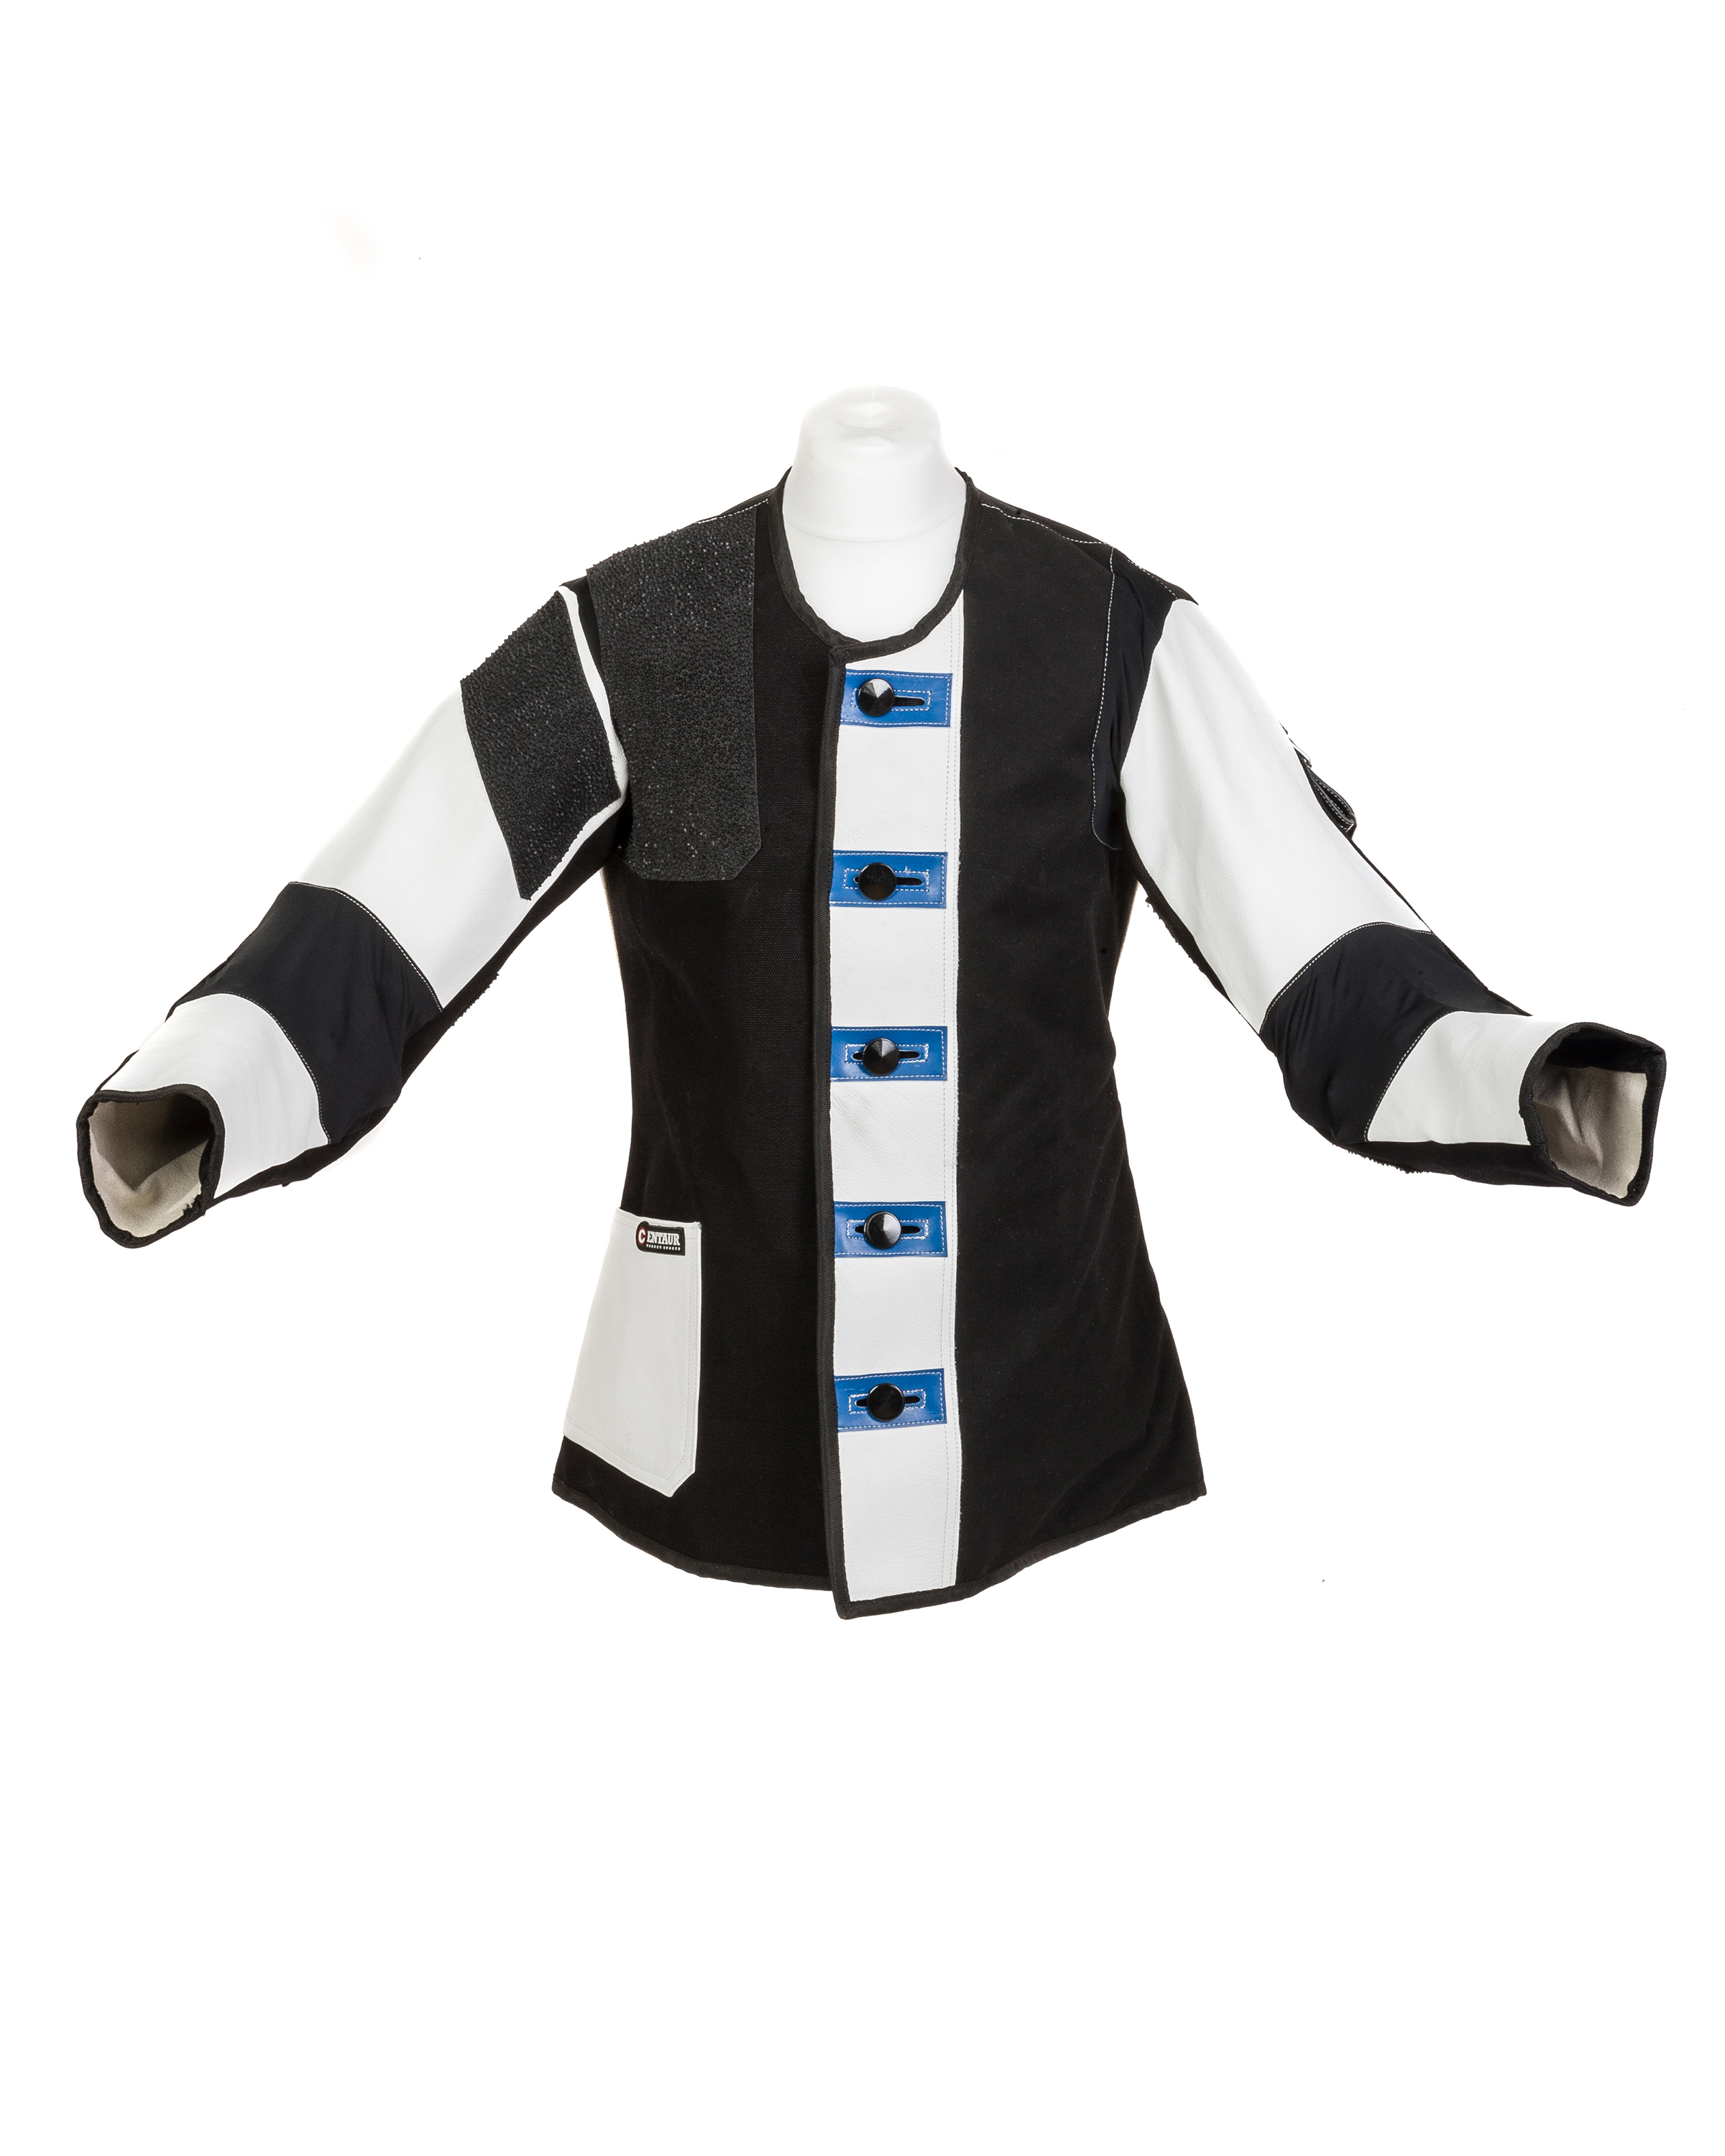 Centaur Standard Double Canvas Target Shooting Jacket - Front View